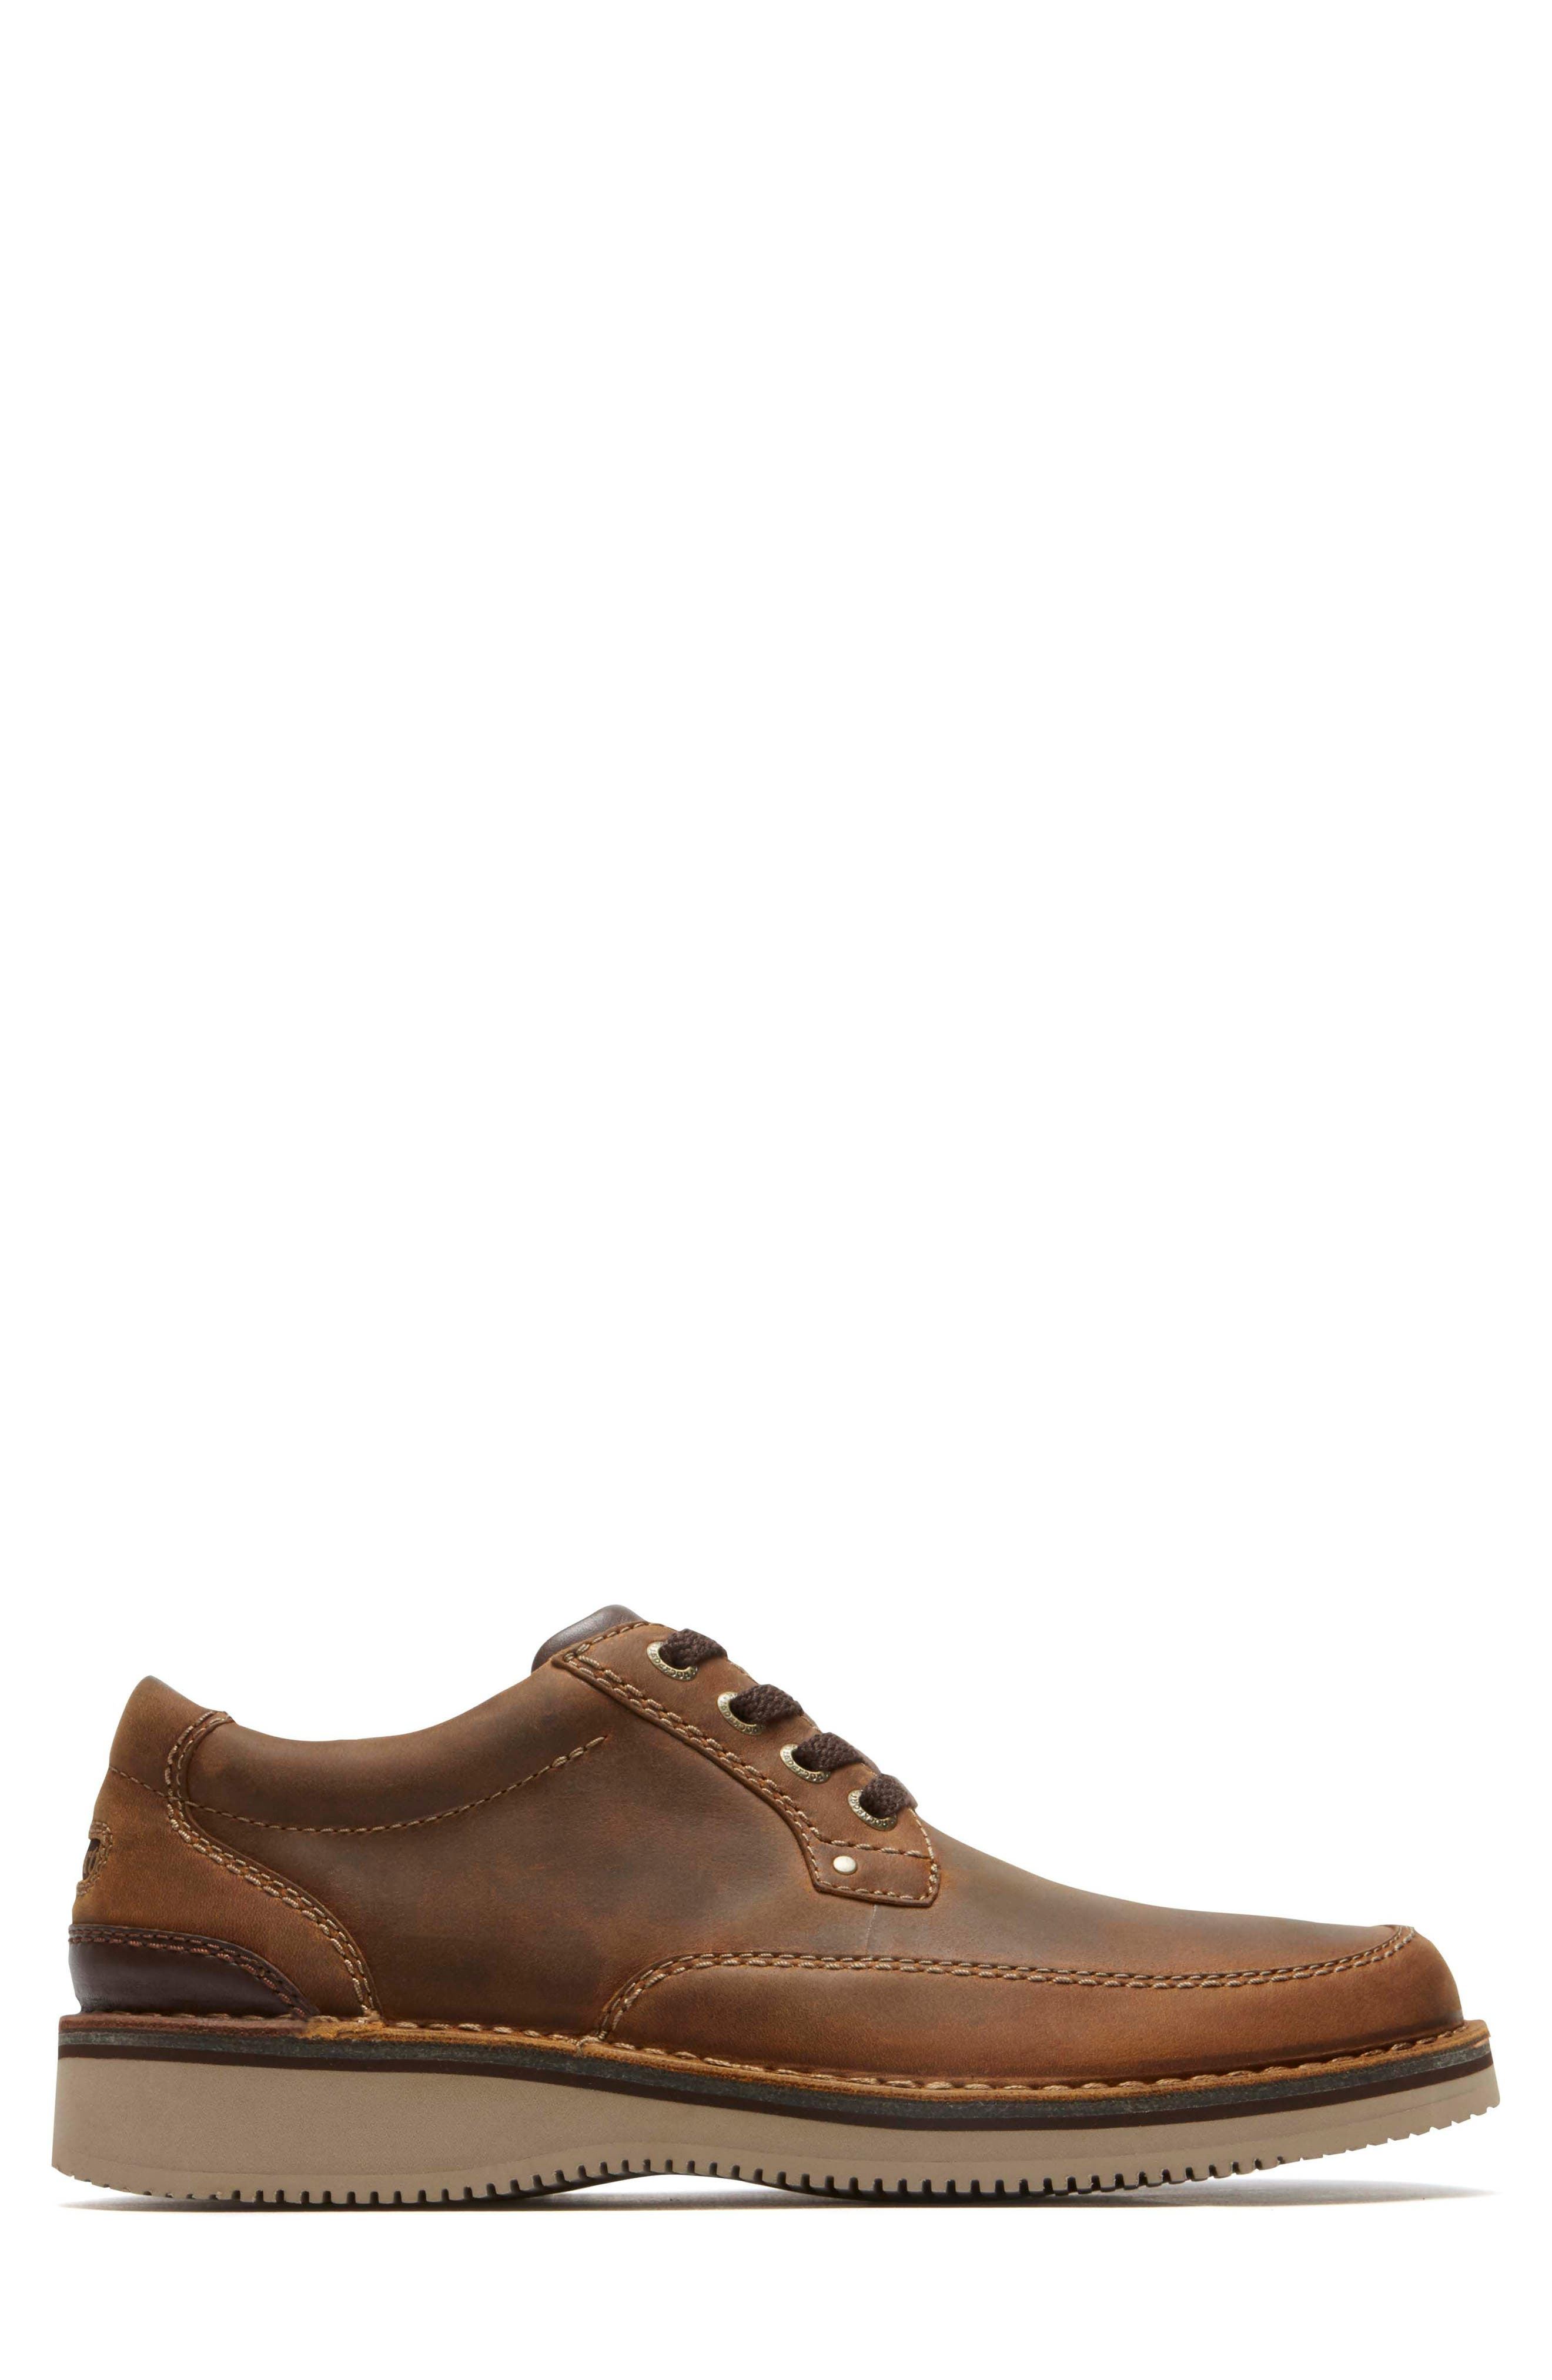 Prestige Point Mudguard Oxford,                             Alternate thumbnail 2, color,                             Beeswax Leather